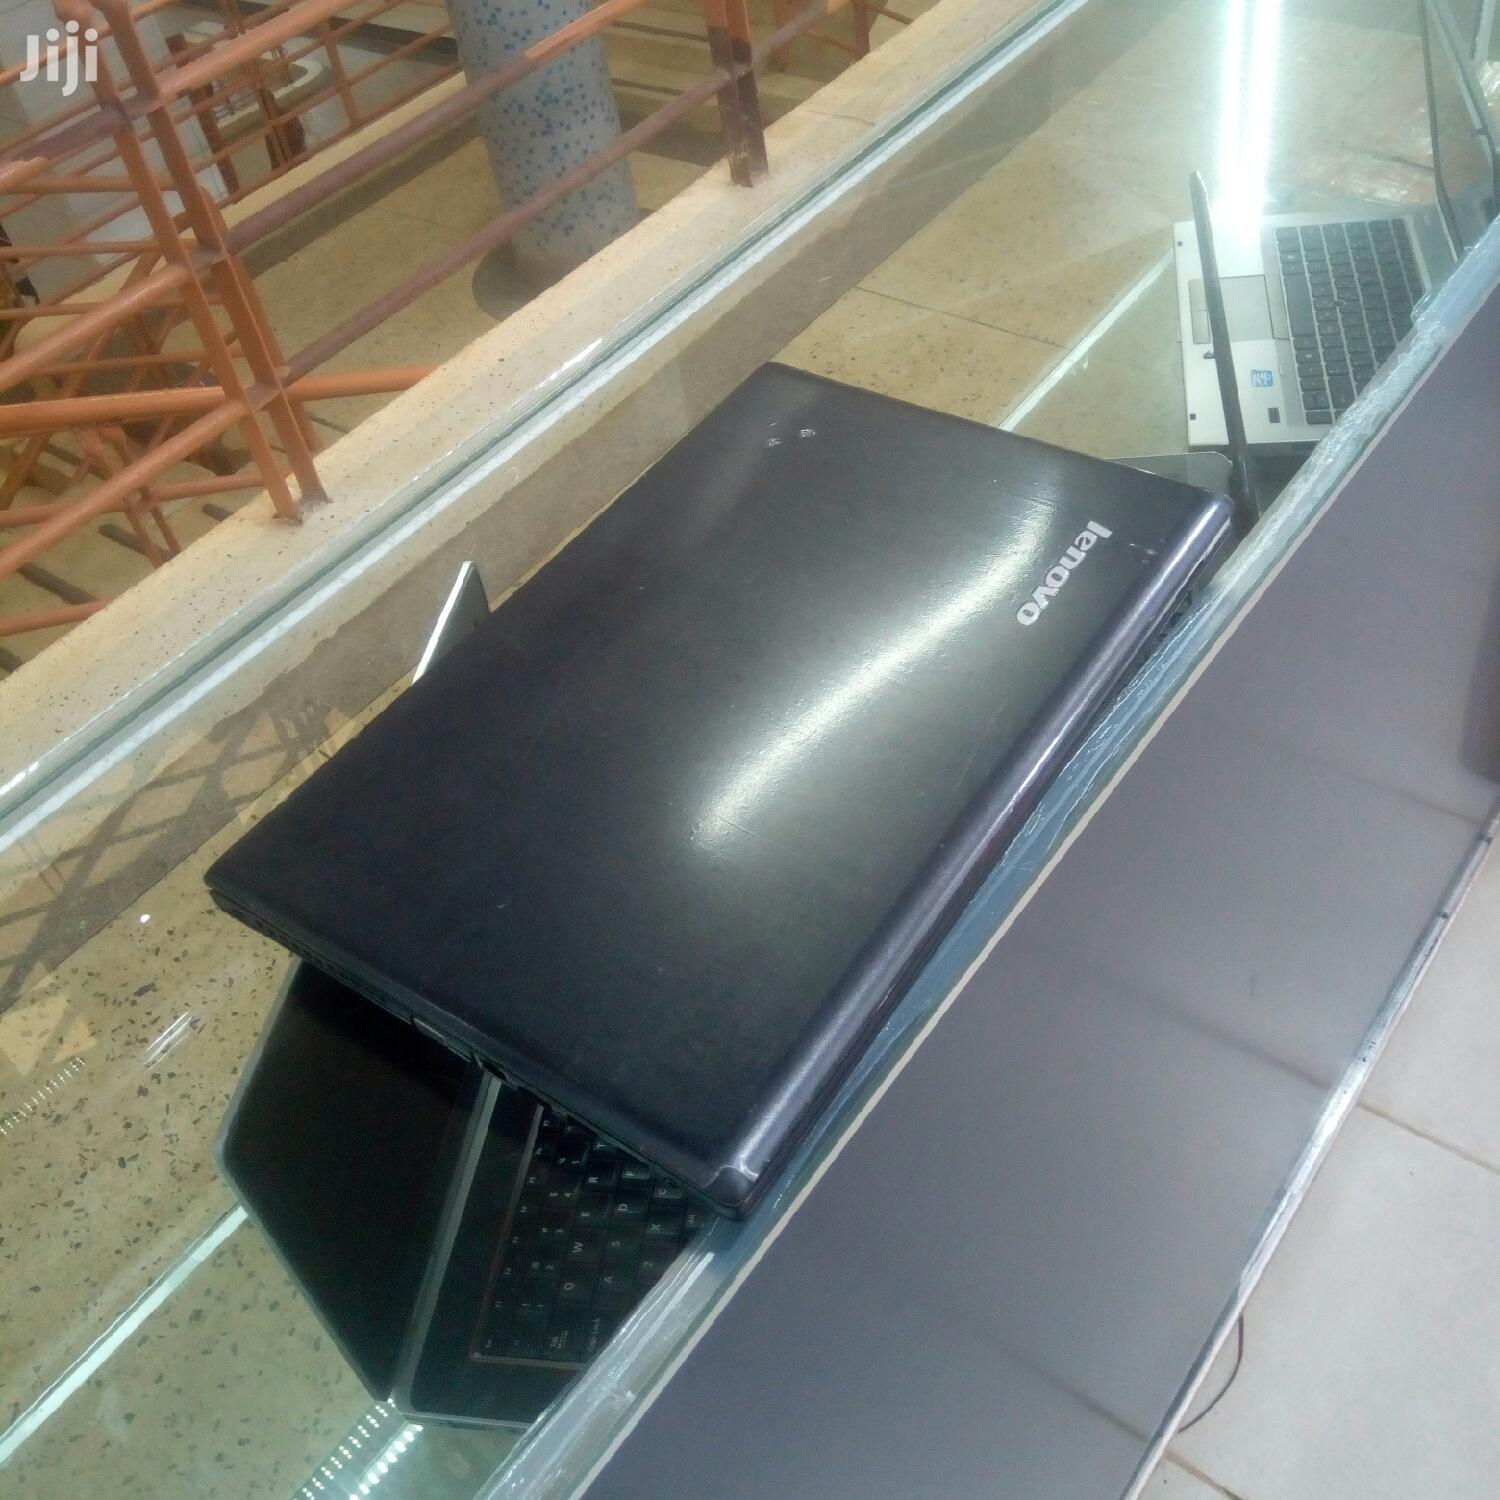 Laptop Lenovo ThinkPad A475 4GB Intel Core i5 HDD 500GB | Laptops & Computers for sale in Kampala, Central Region, Uganda